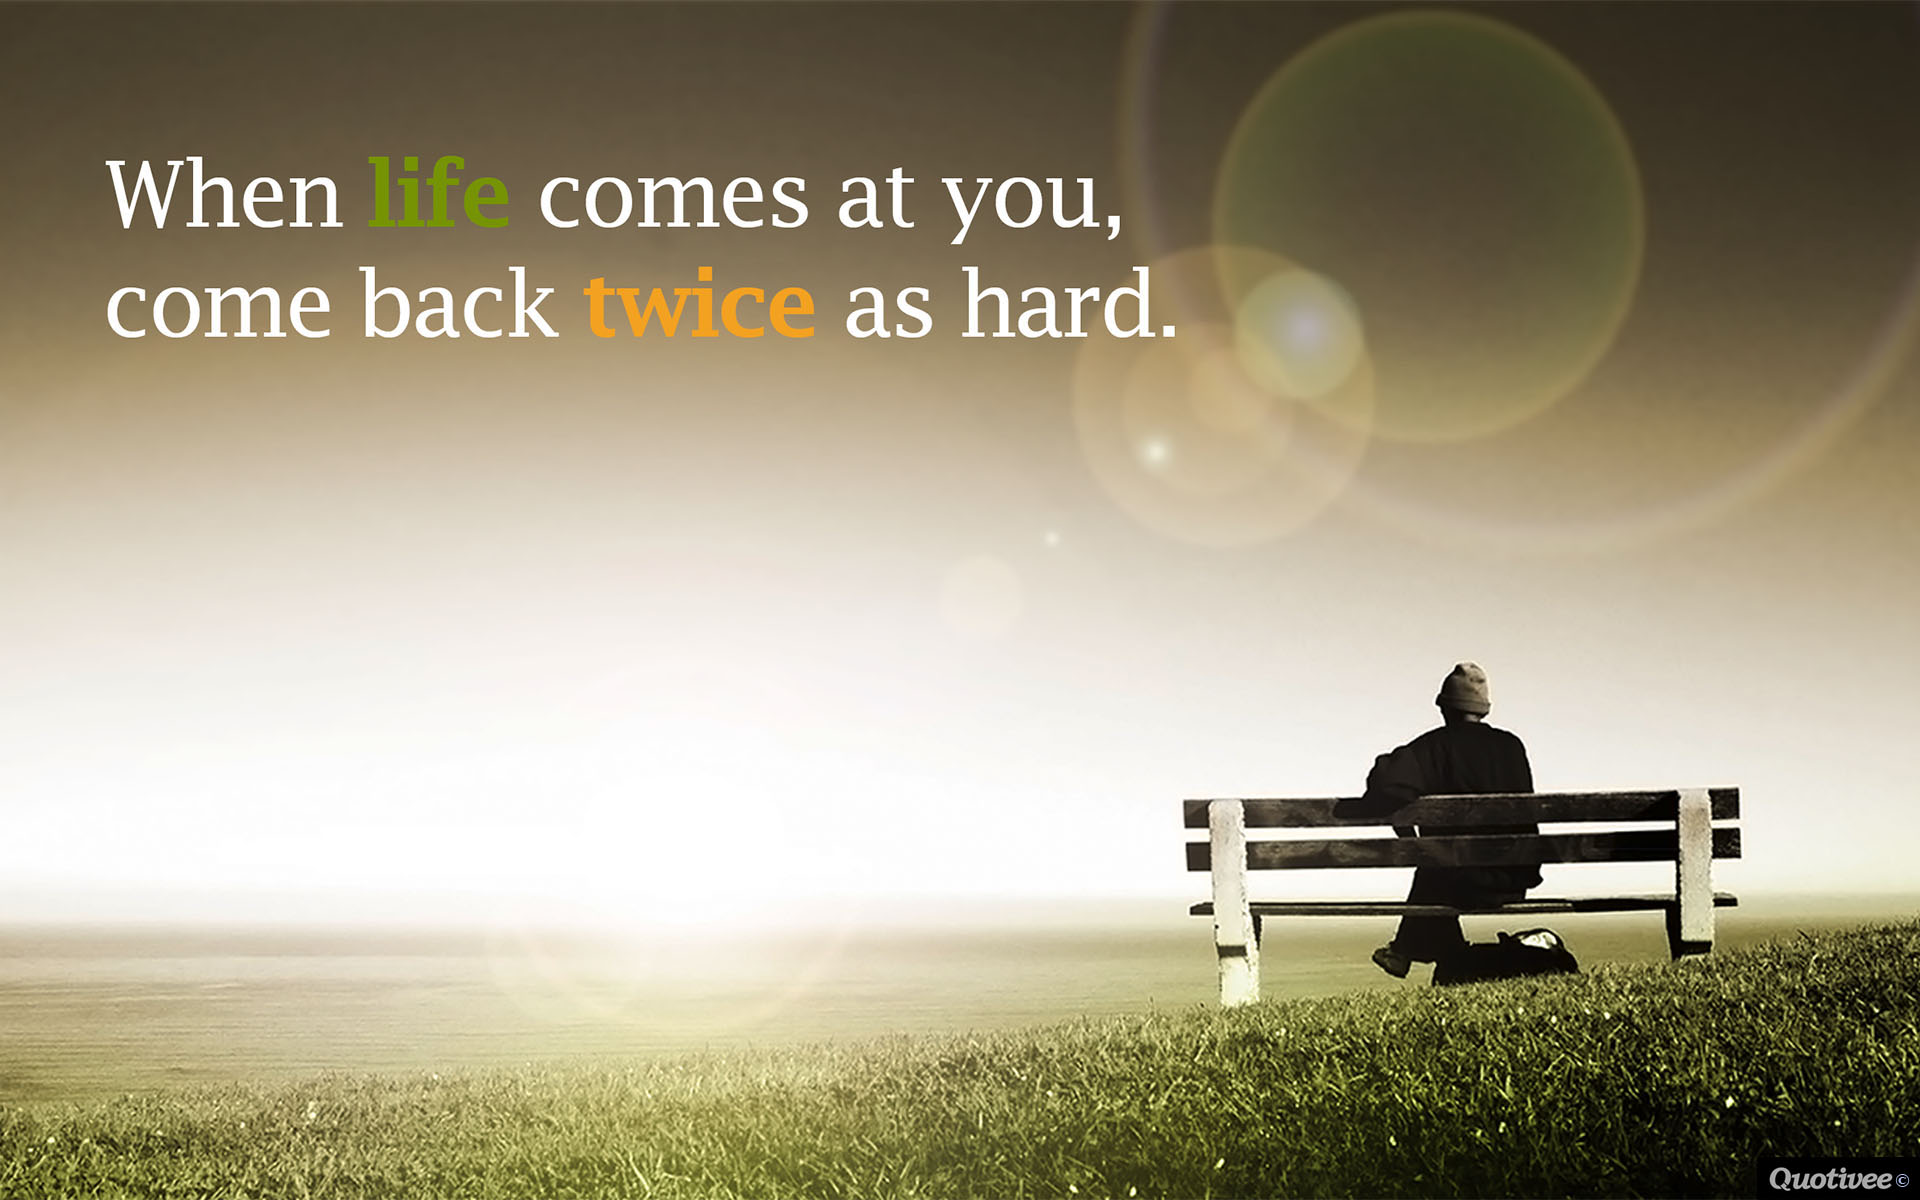 Inspirational Quotes Quotes When Life Comes At You  Inspirational Quotes  Quotivee